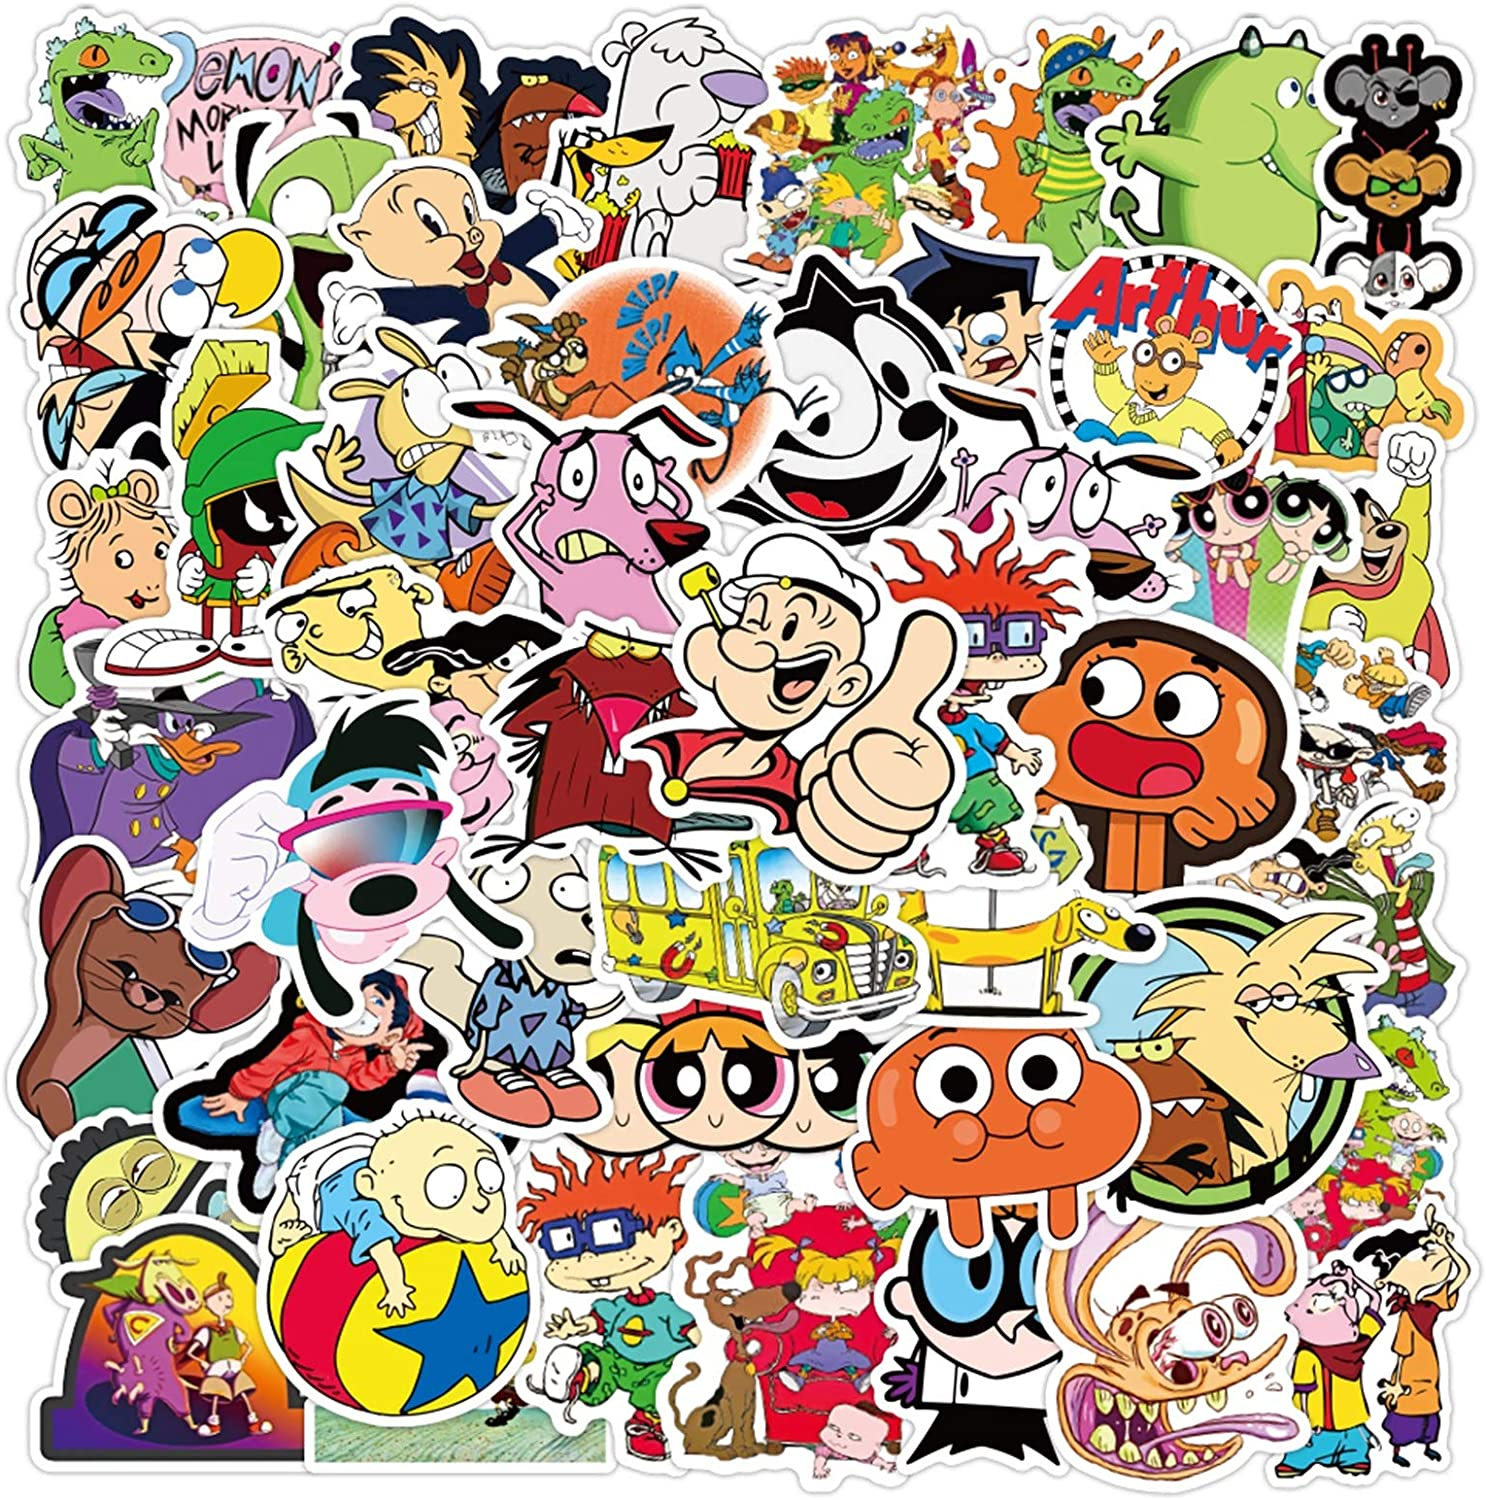 90s Cartoon Stickers Cool Anime Stickers 50PCS Waterproof Vinyl Stickers Decals for Laptop, Water Bottles, Skateboard, Phone, Bicycle Cute Luggage Guitar Decal Graffiti Patches Decoration Gifts